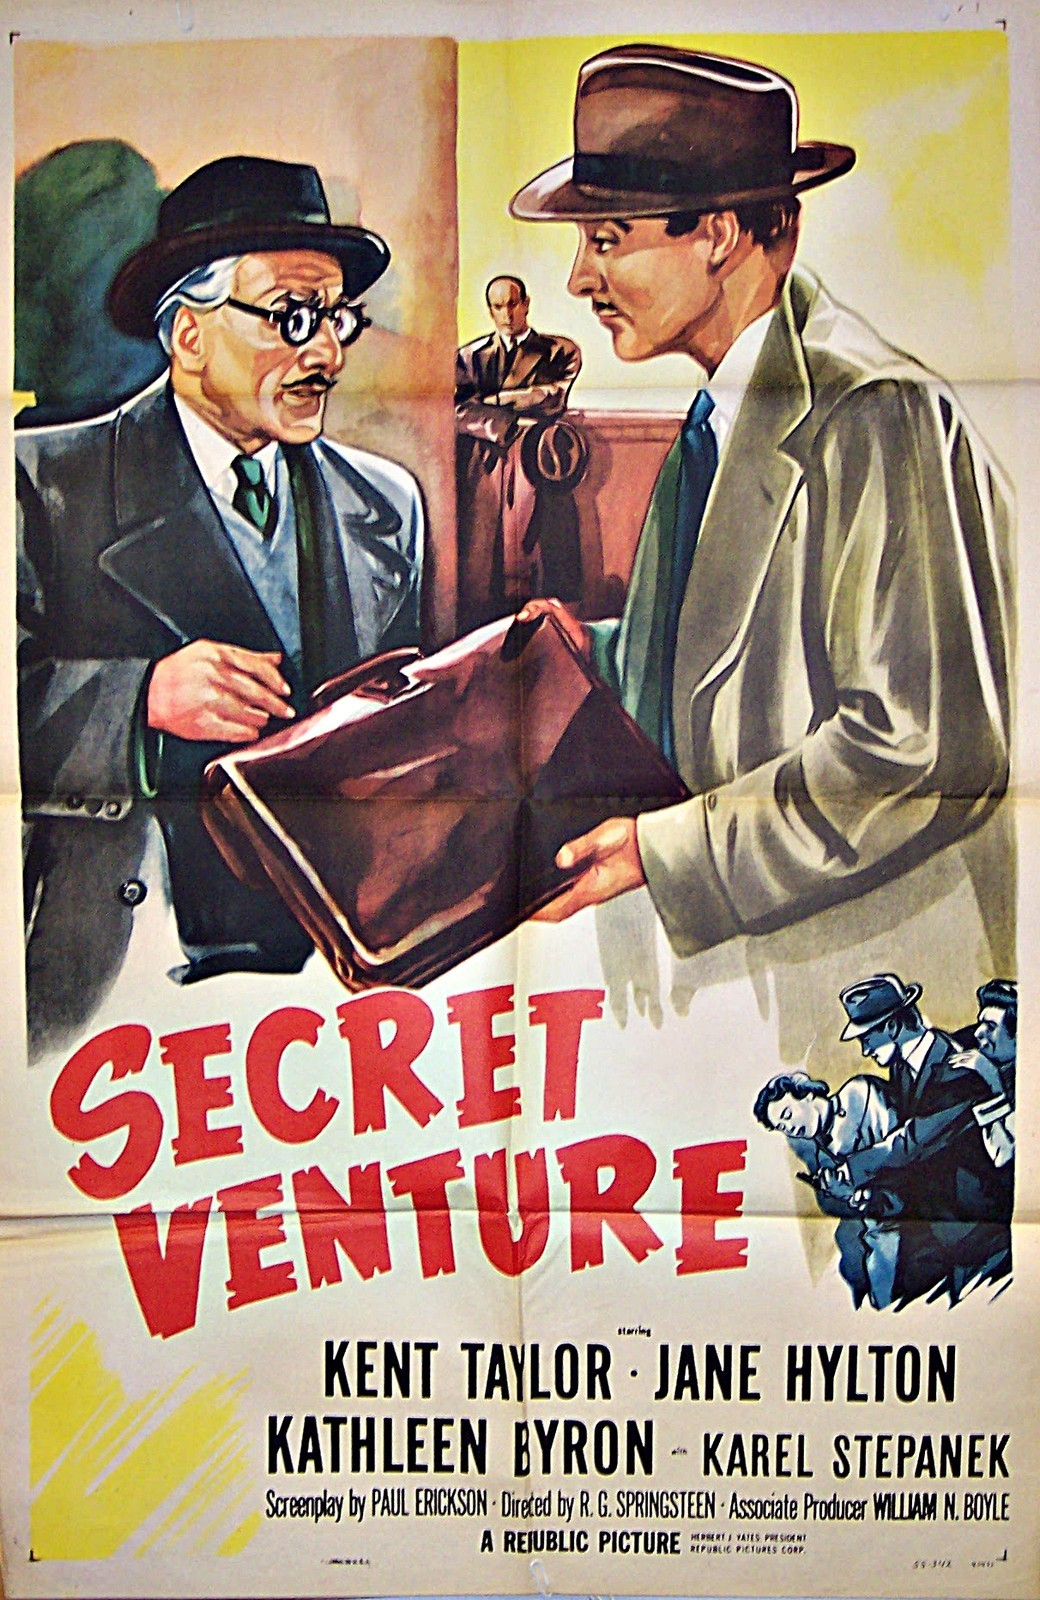 Pictured is a US one-sheet promotional poster for the 1955 R.G. Springsteen film Secret Venture starring Kent Taylor.